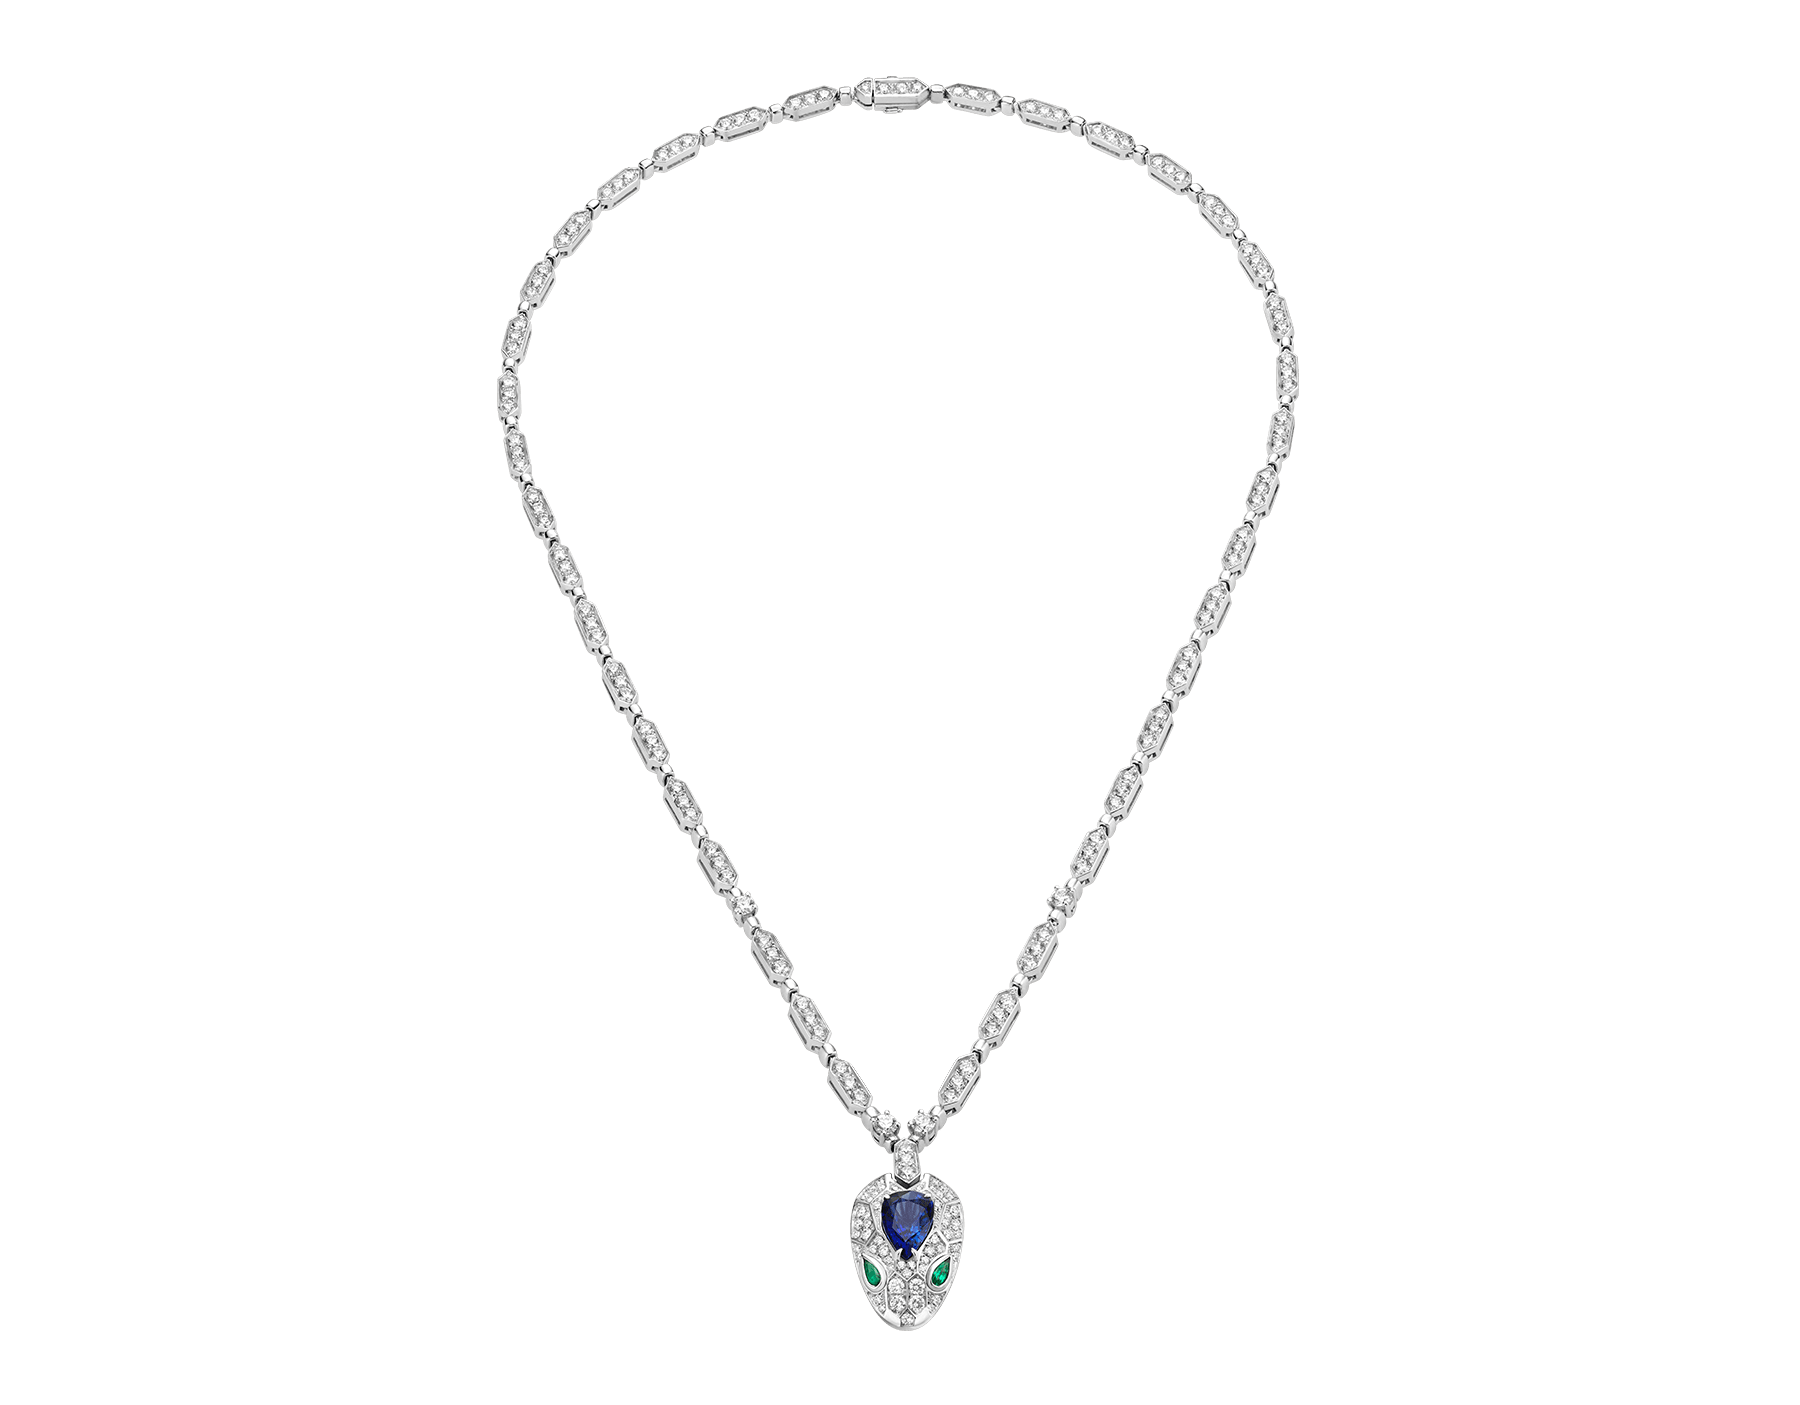 Serpenti 18 kt white gold necklace set with a blue sapphire on the head, emerald eyes and pavé diamonds 355354 image 1